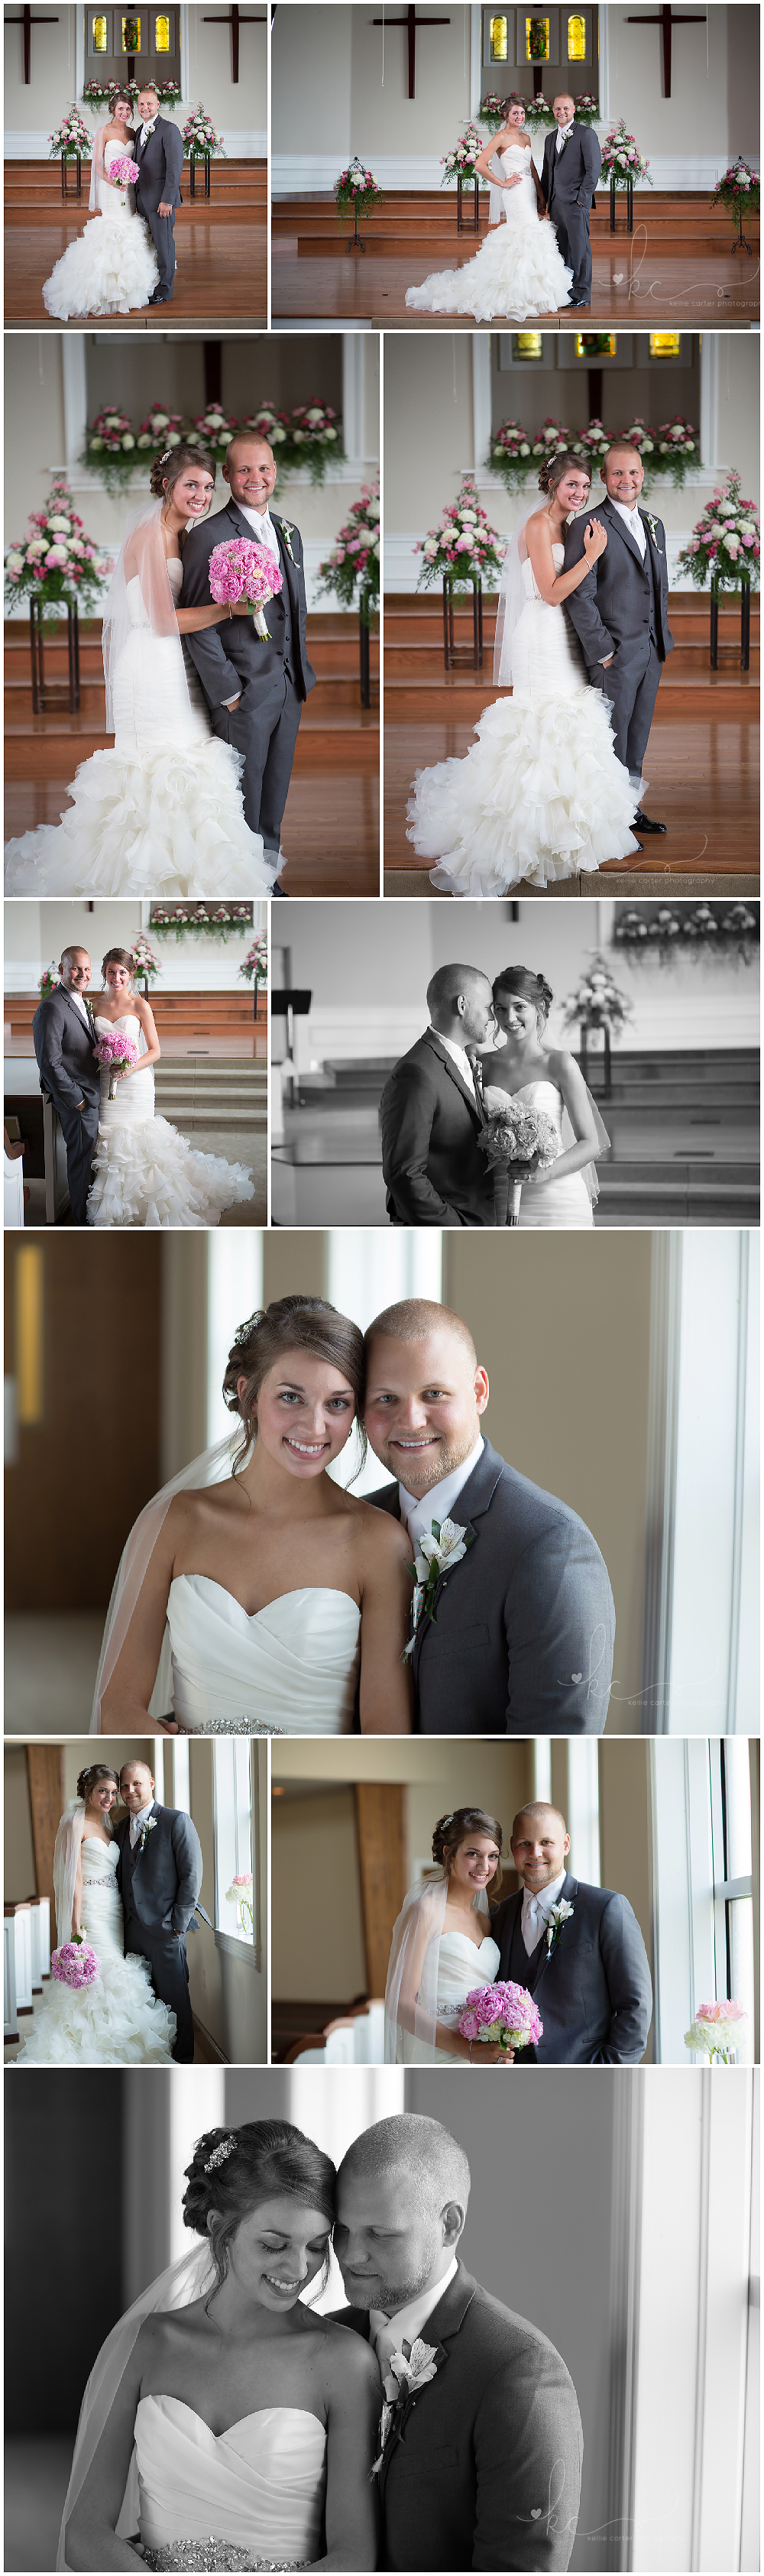 KellieCarterPhotography8 Maggie & Jacob are Married {Monticello KY Wedding Photographer}